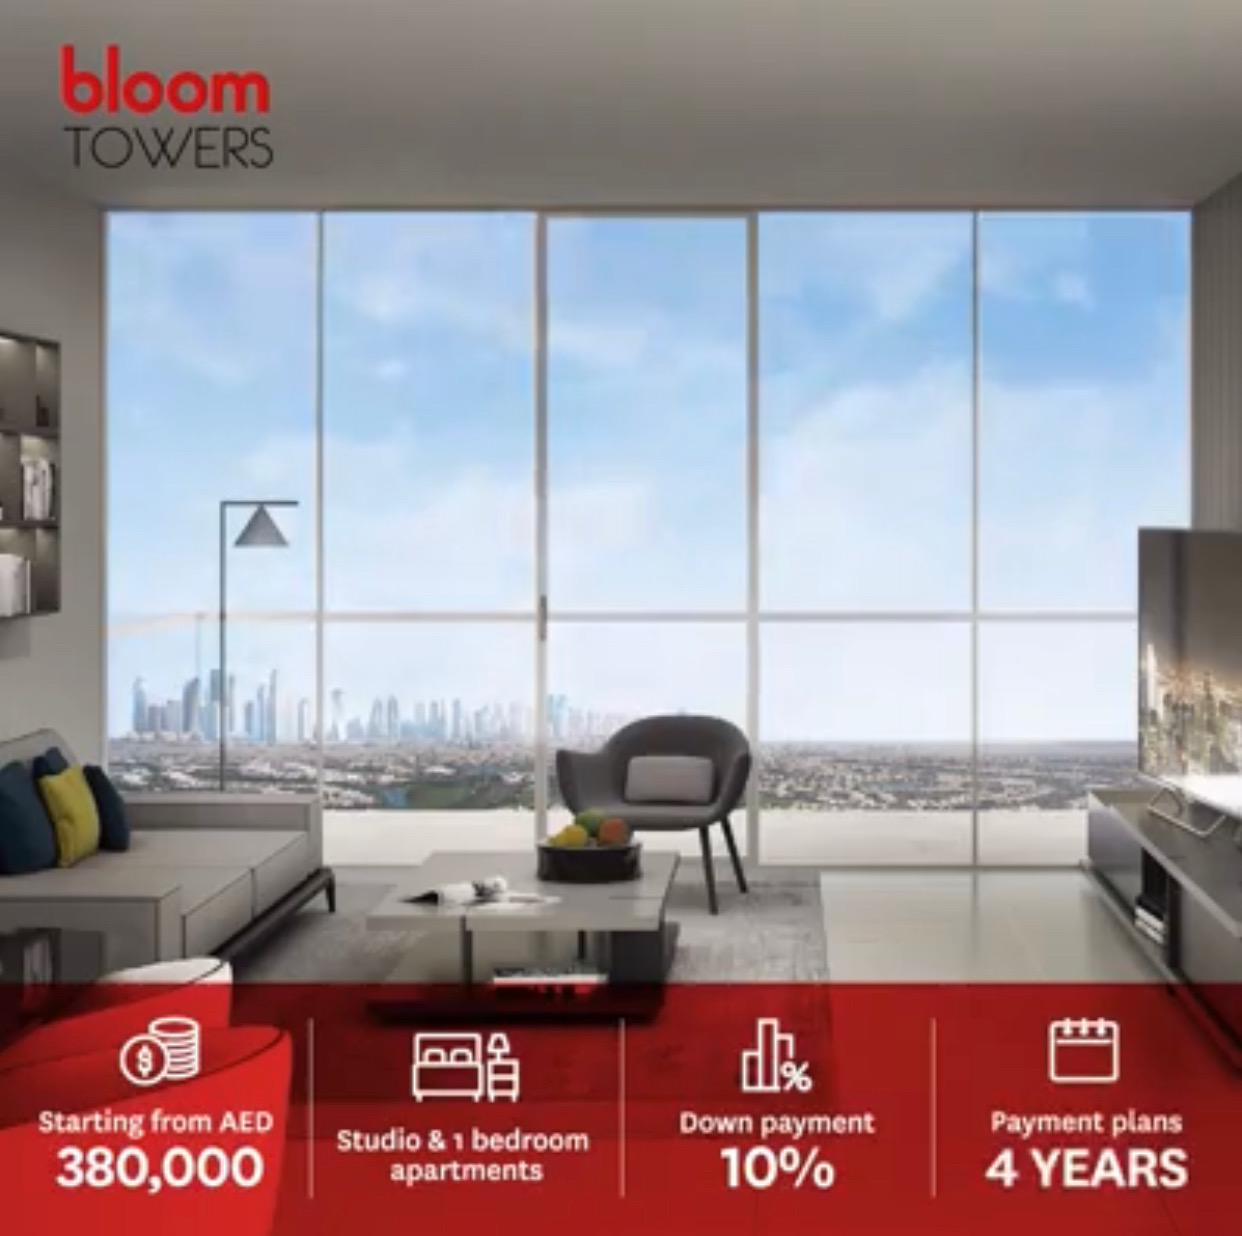 Studio Apartment Best Investment Opportunity in Bloom Towers